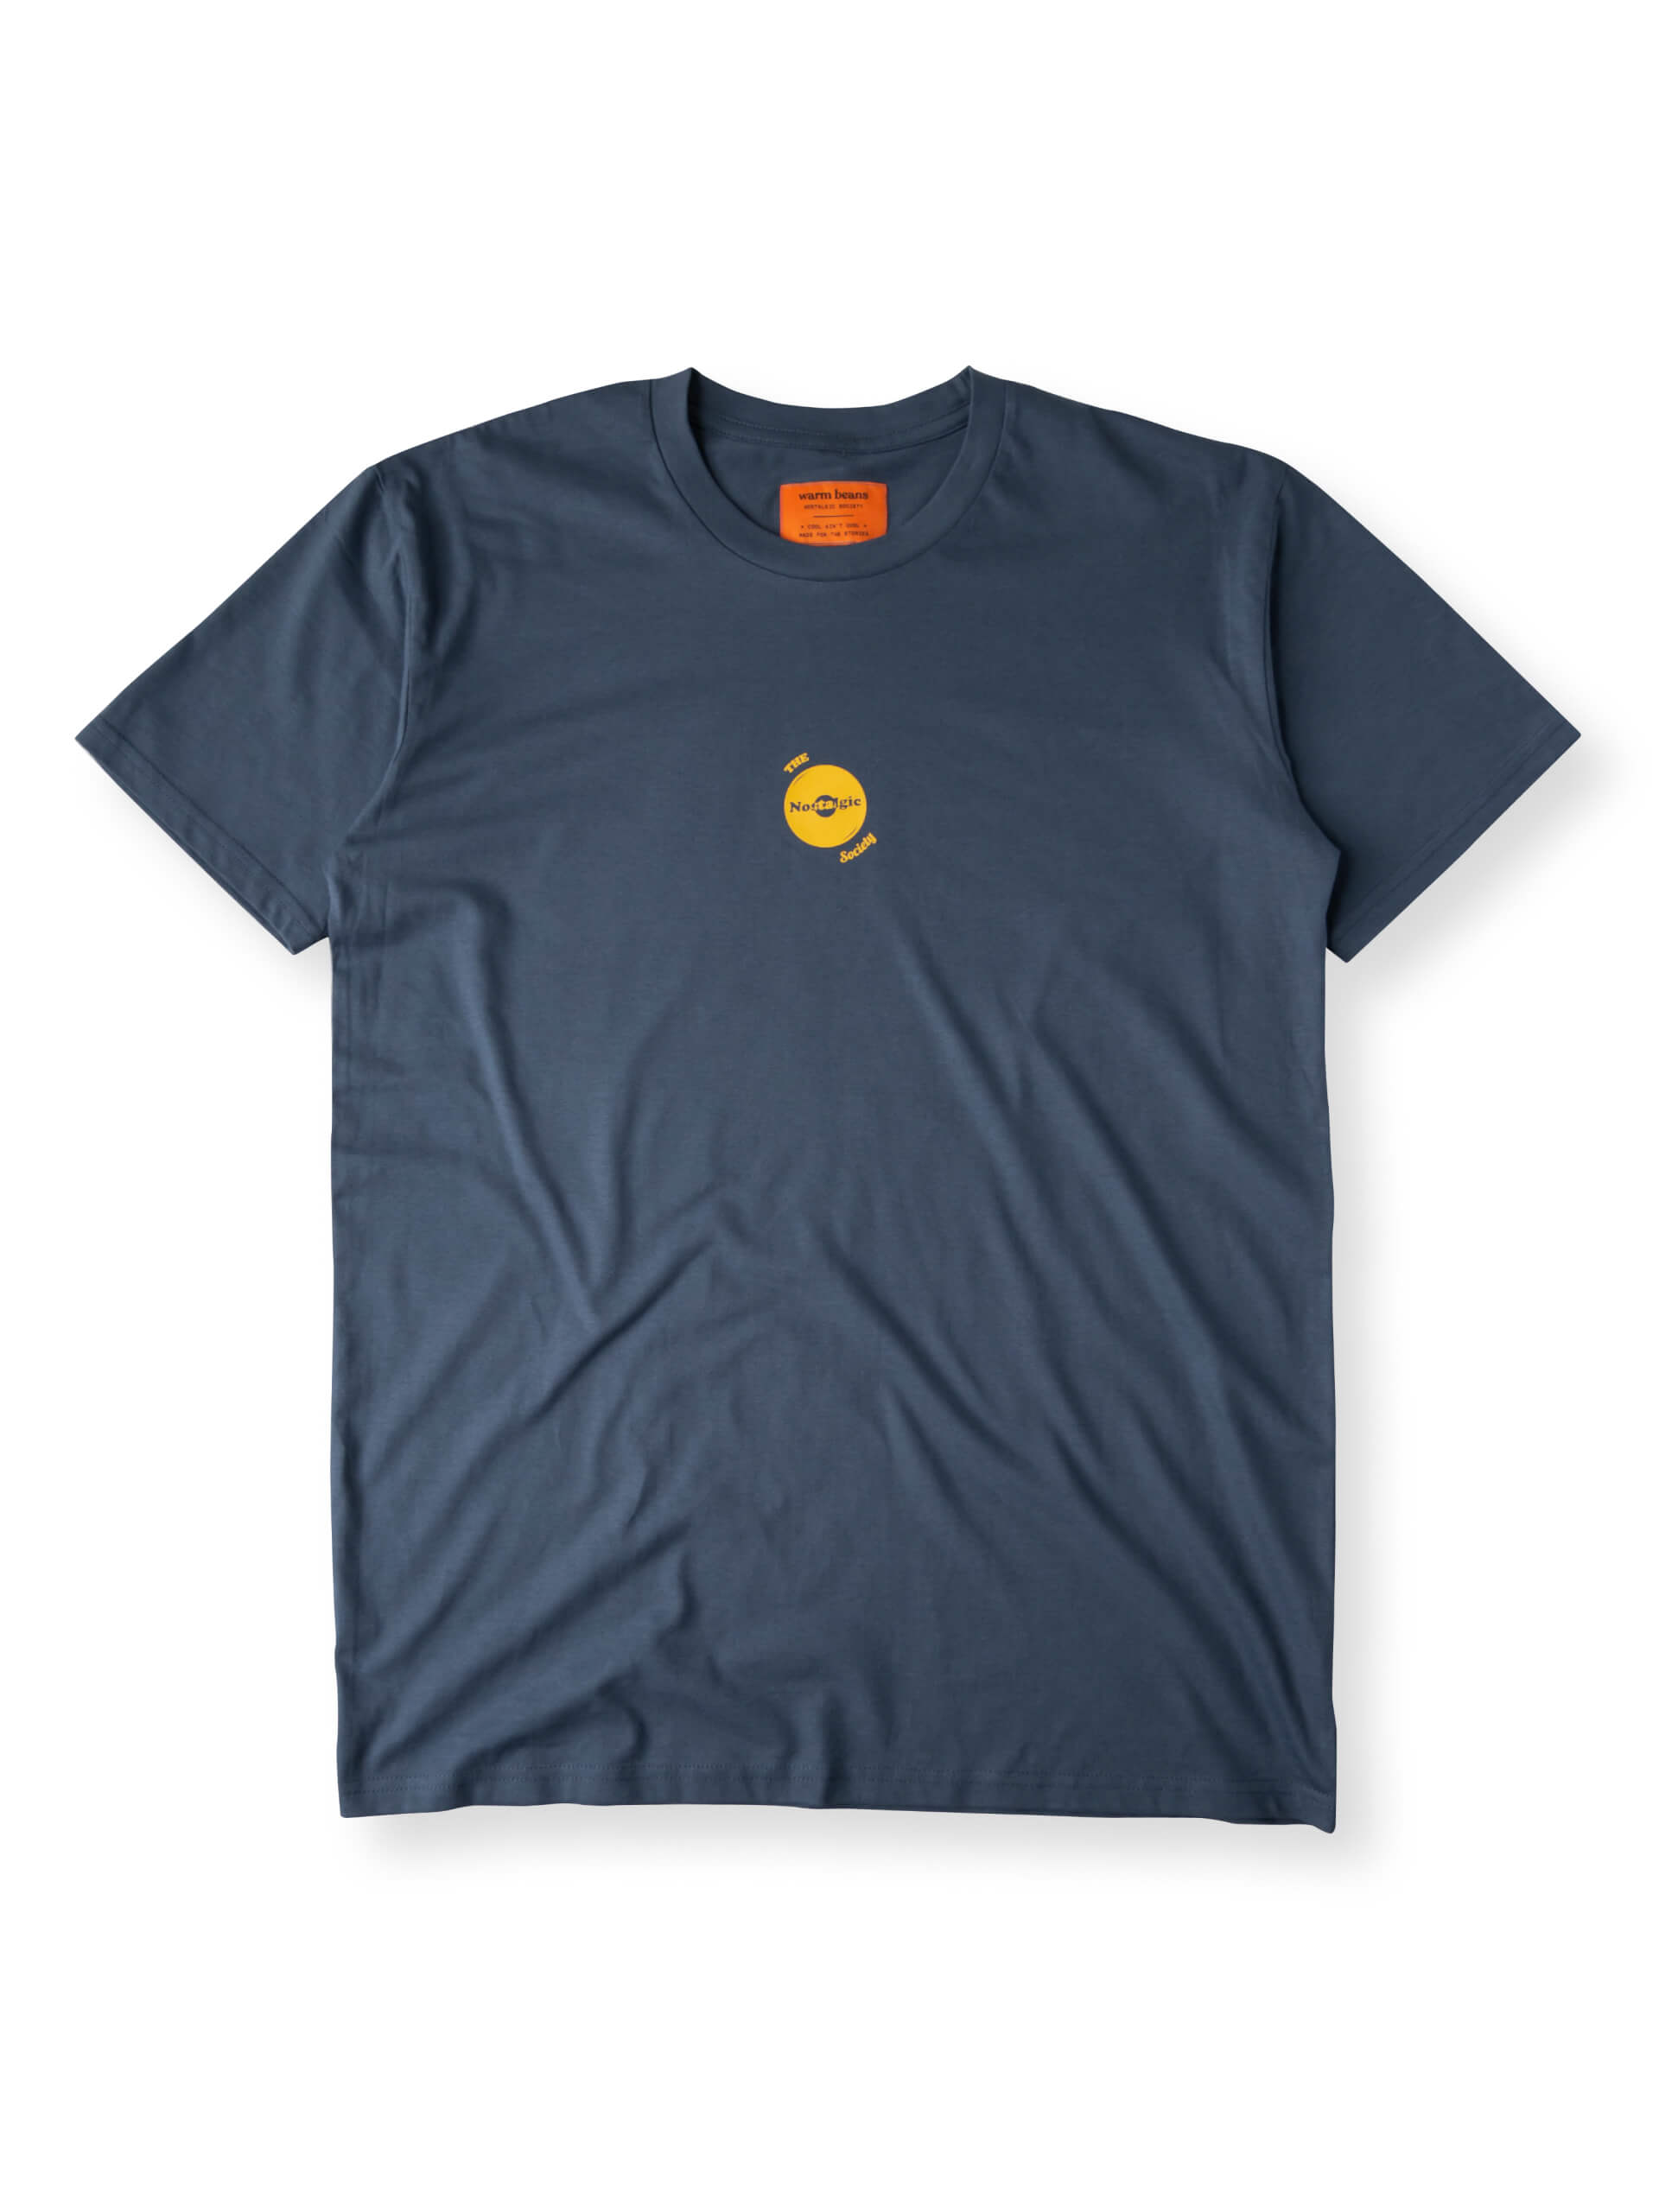 Warm Beans Record Tee